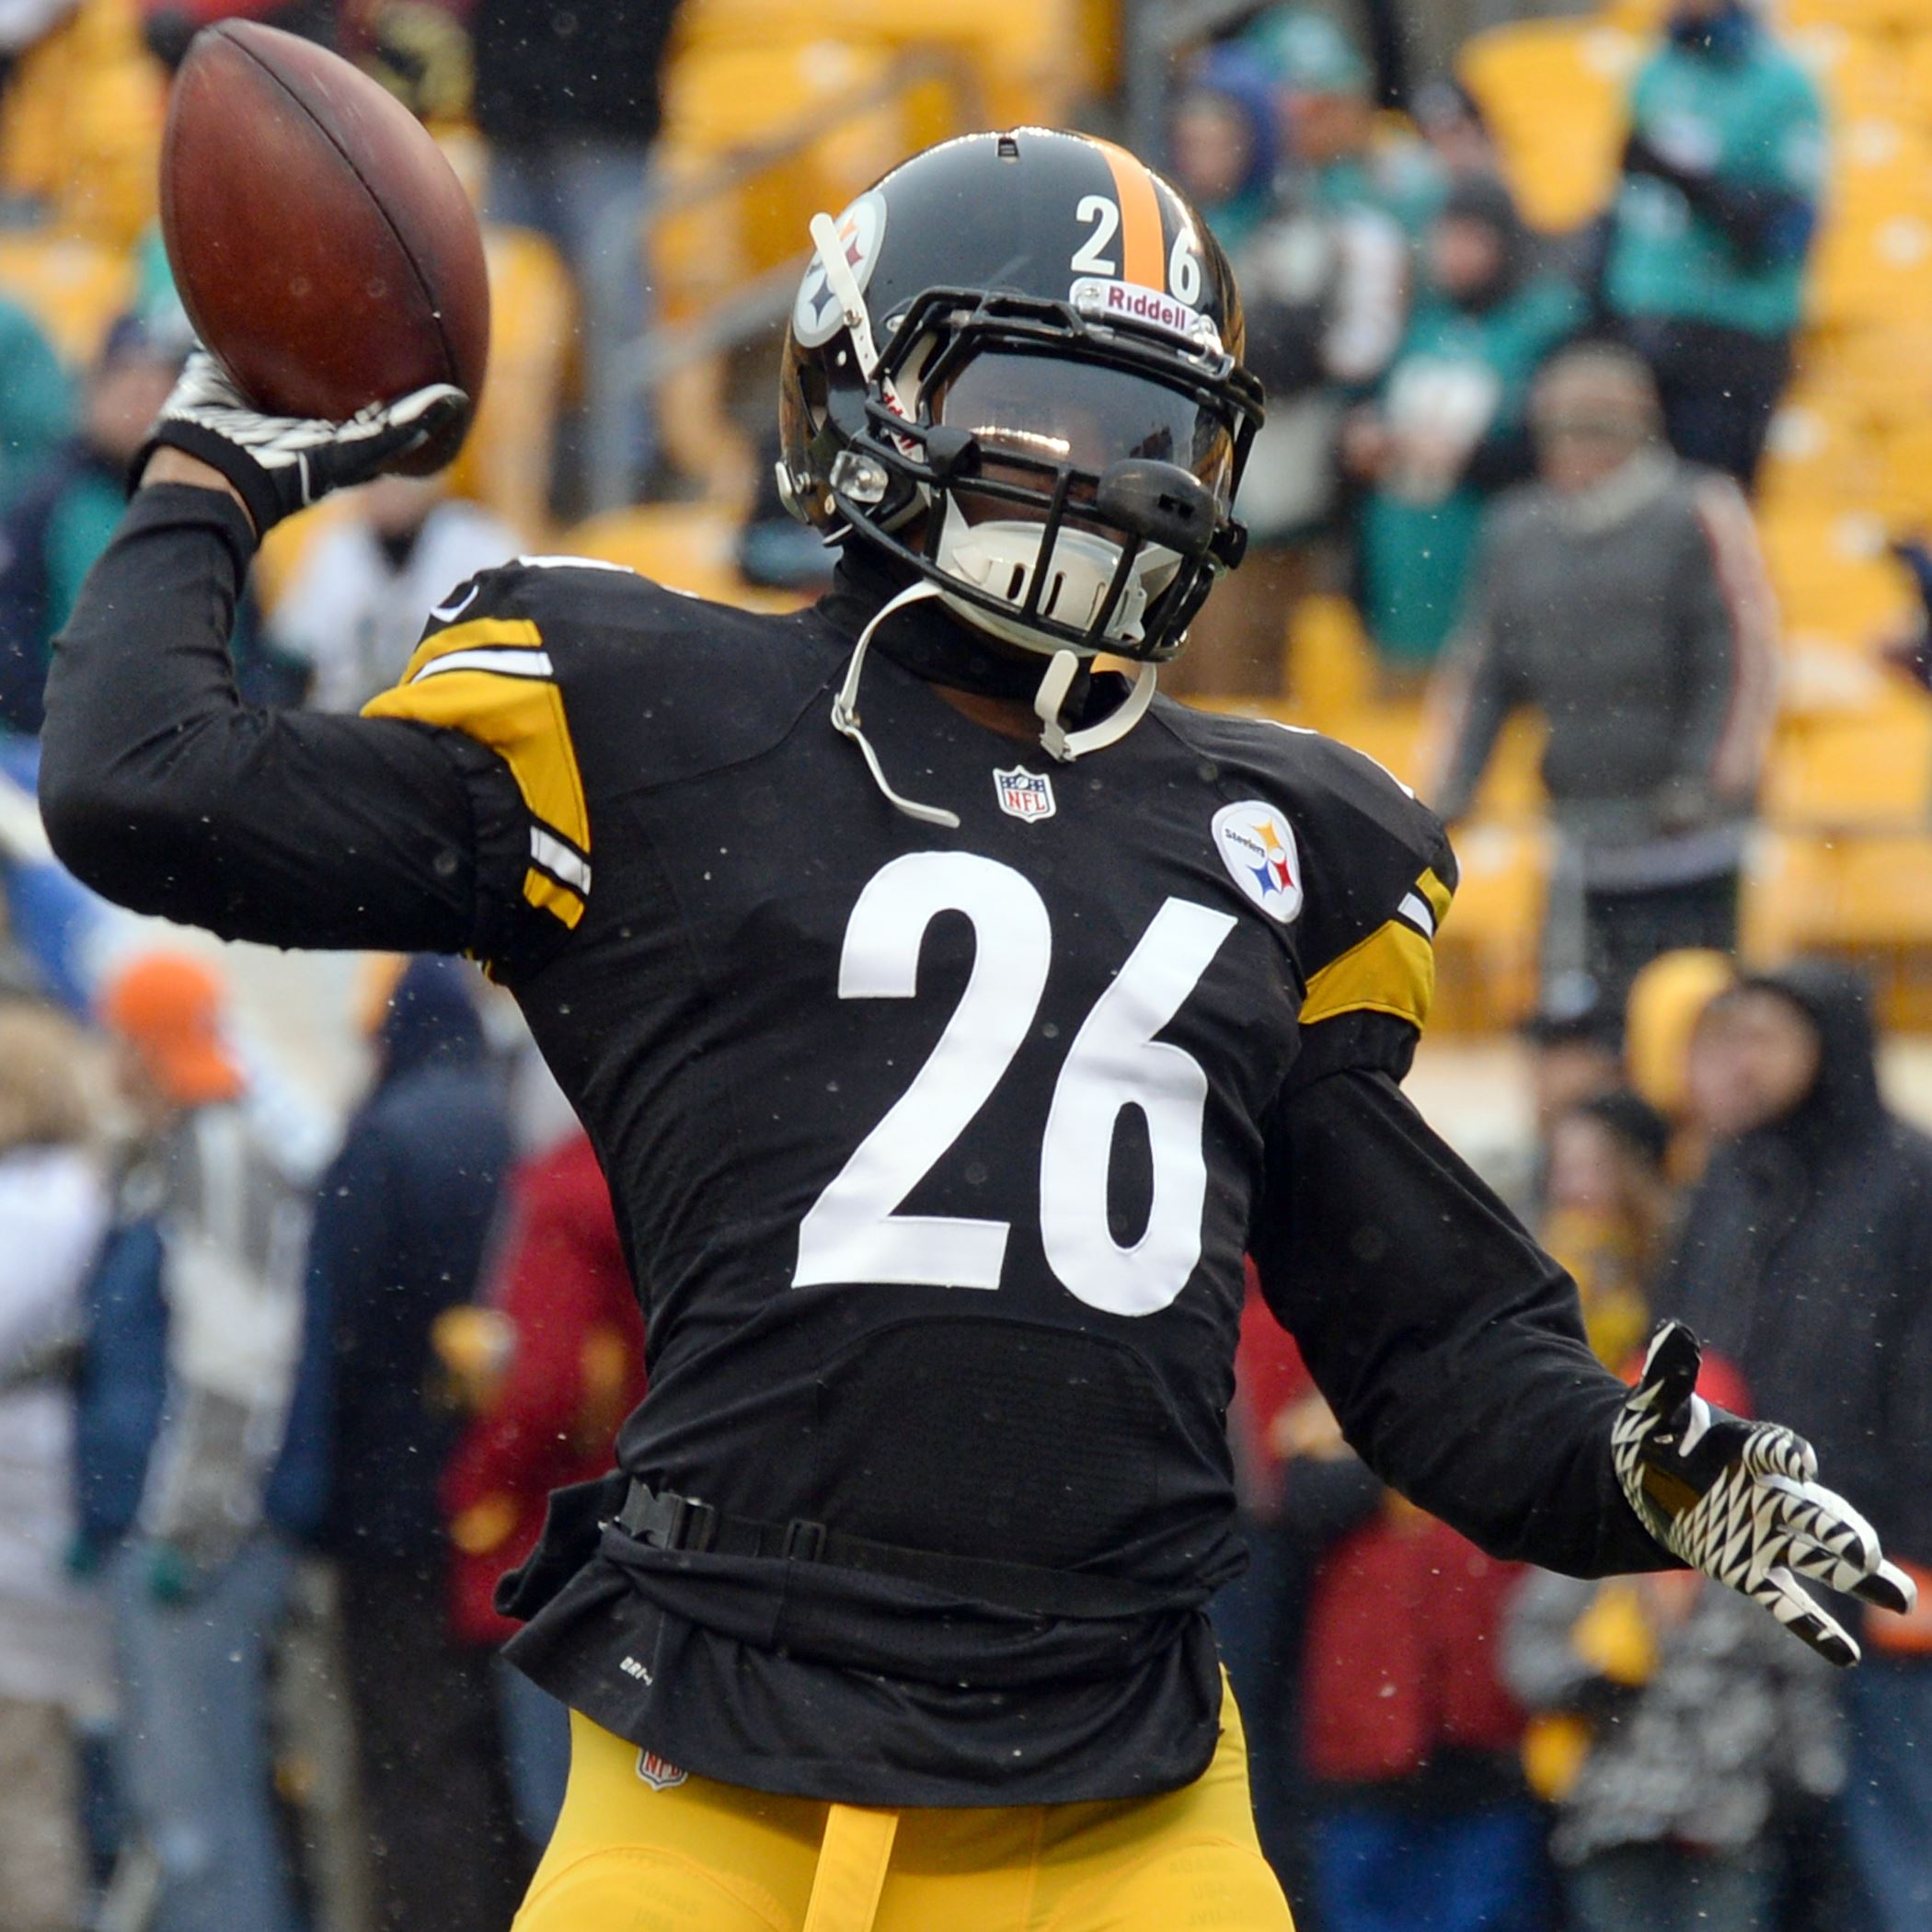 Get the latest updated stats for Pittsburgh Steelers running back LeVeon Bell on ESPNcom